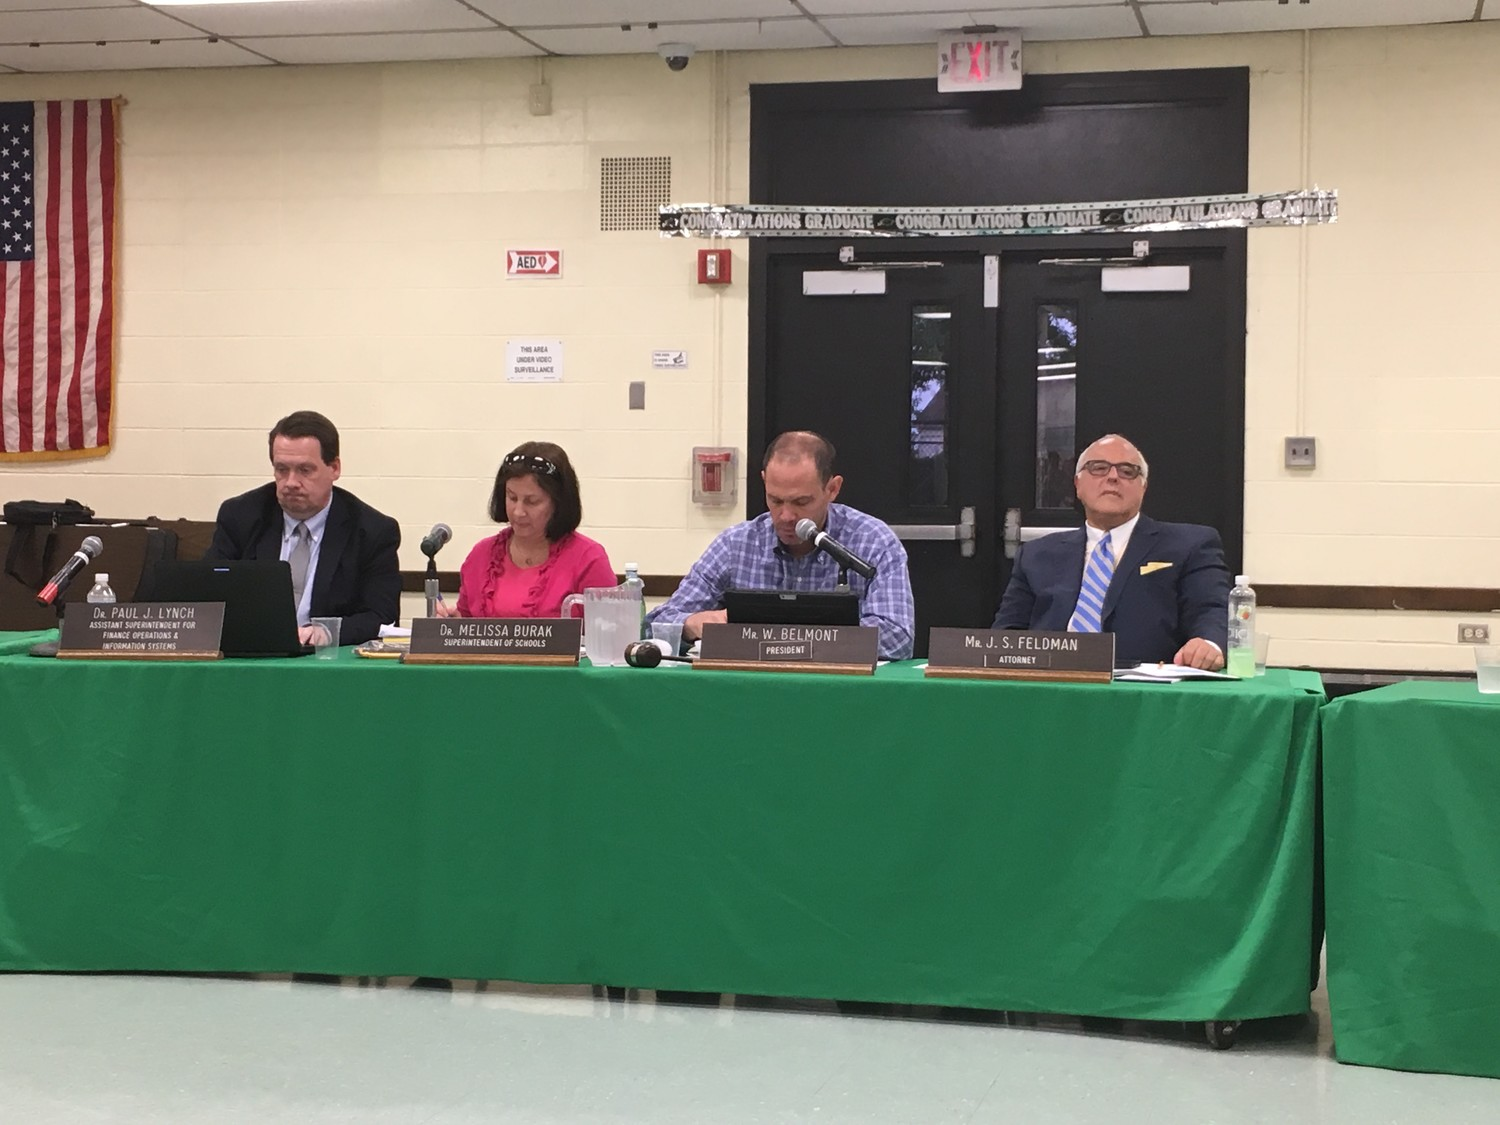 Now that residents have approved a $28.9 million bond proposal, members of the Lynbrook Board of Education will begin requesting proposals from contractors for projects in all of the district's buildings once the New York State Education Department reviews and approves the measure.